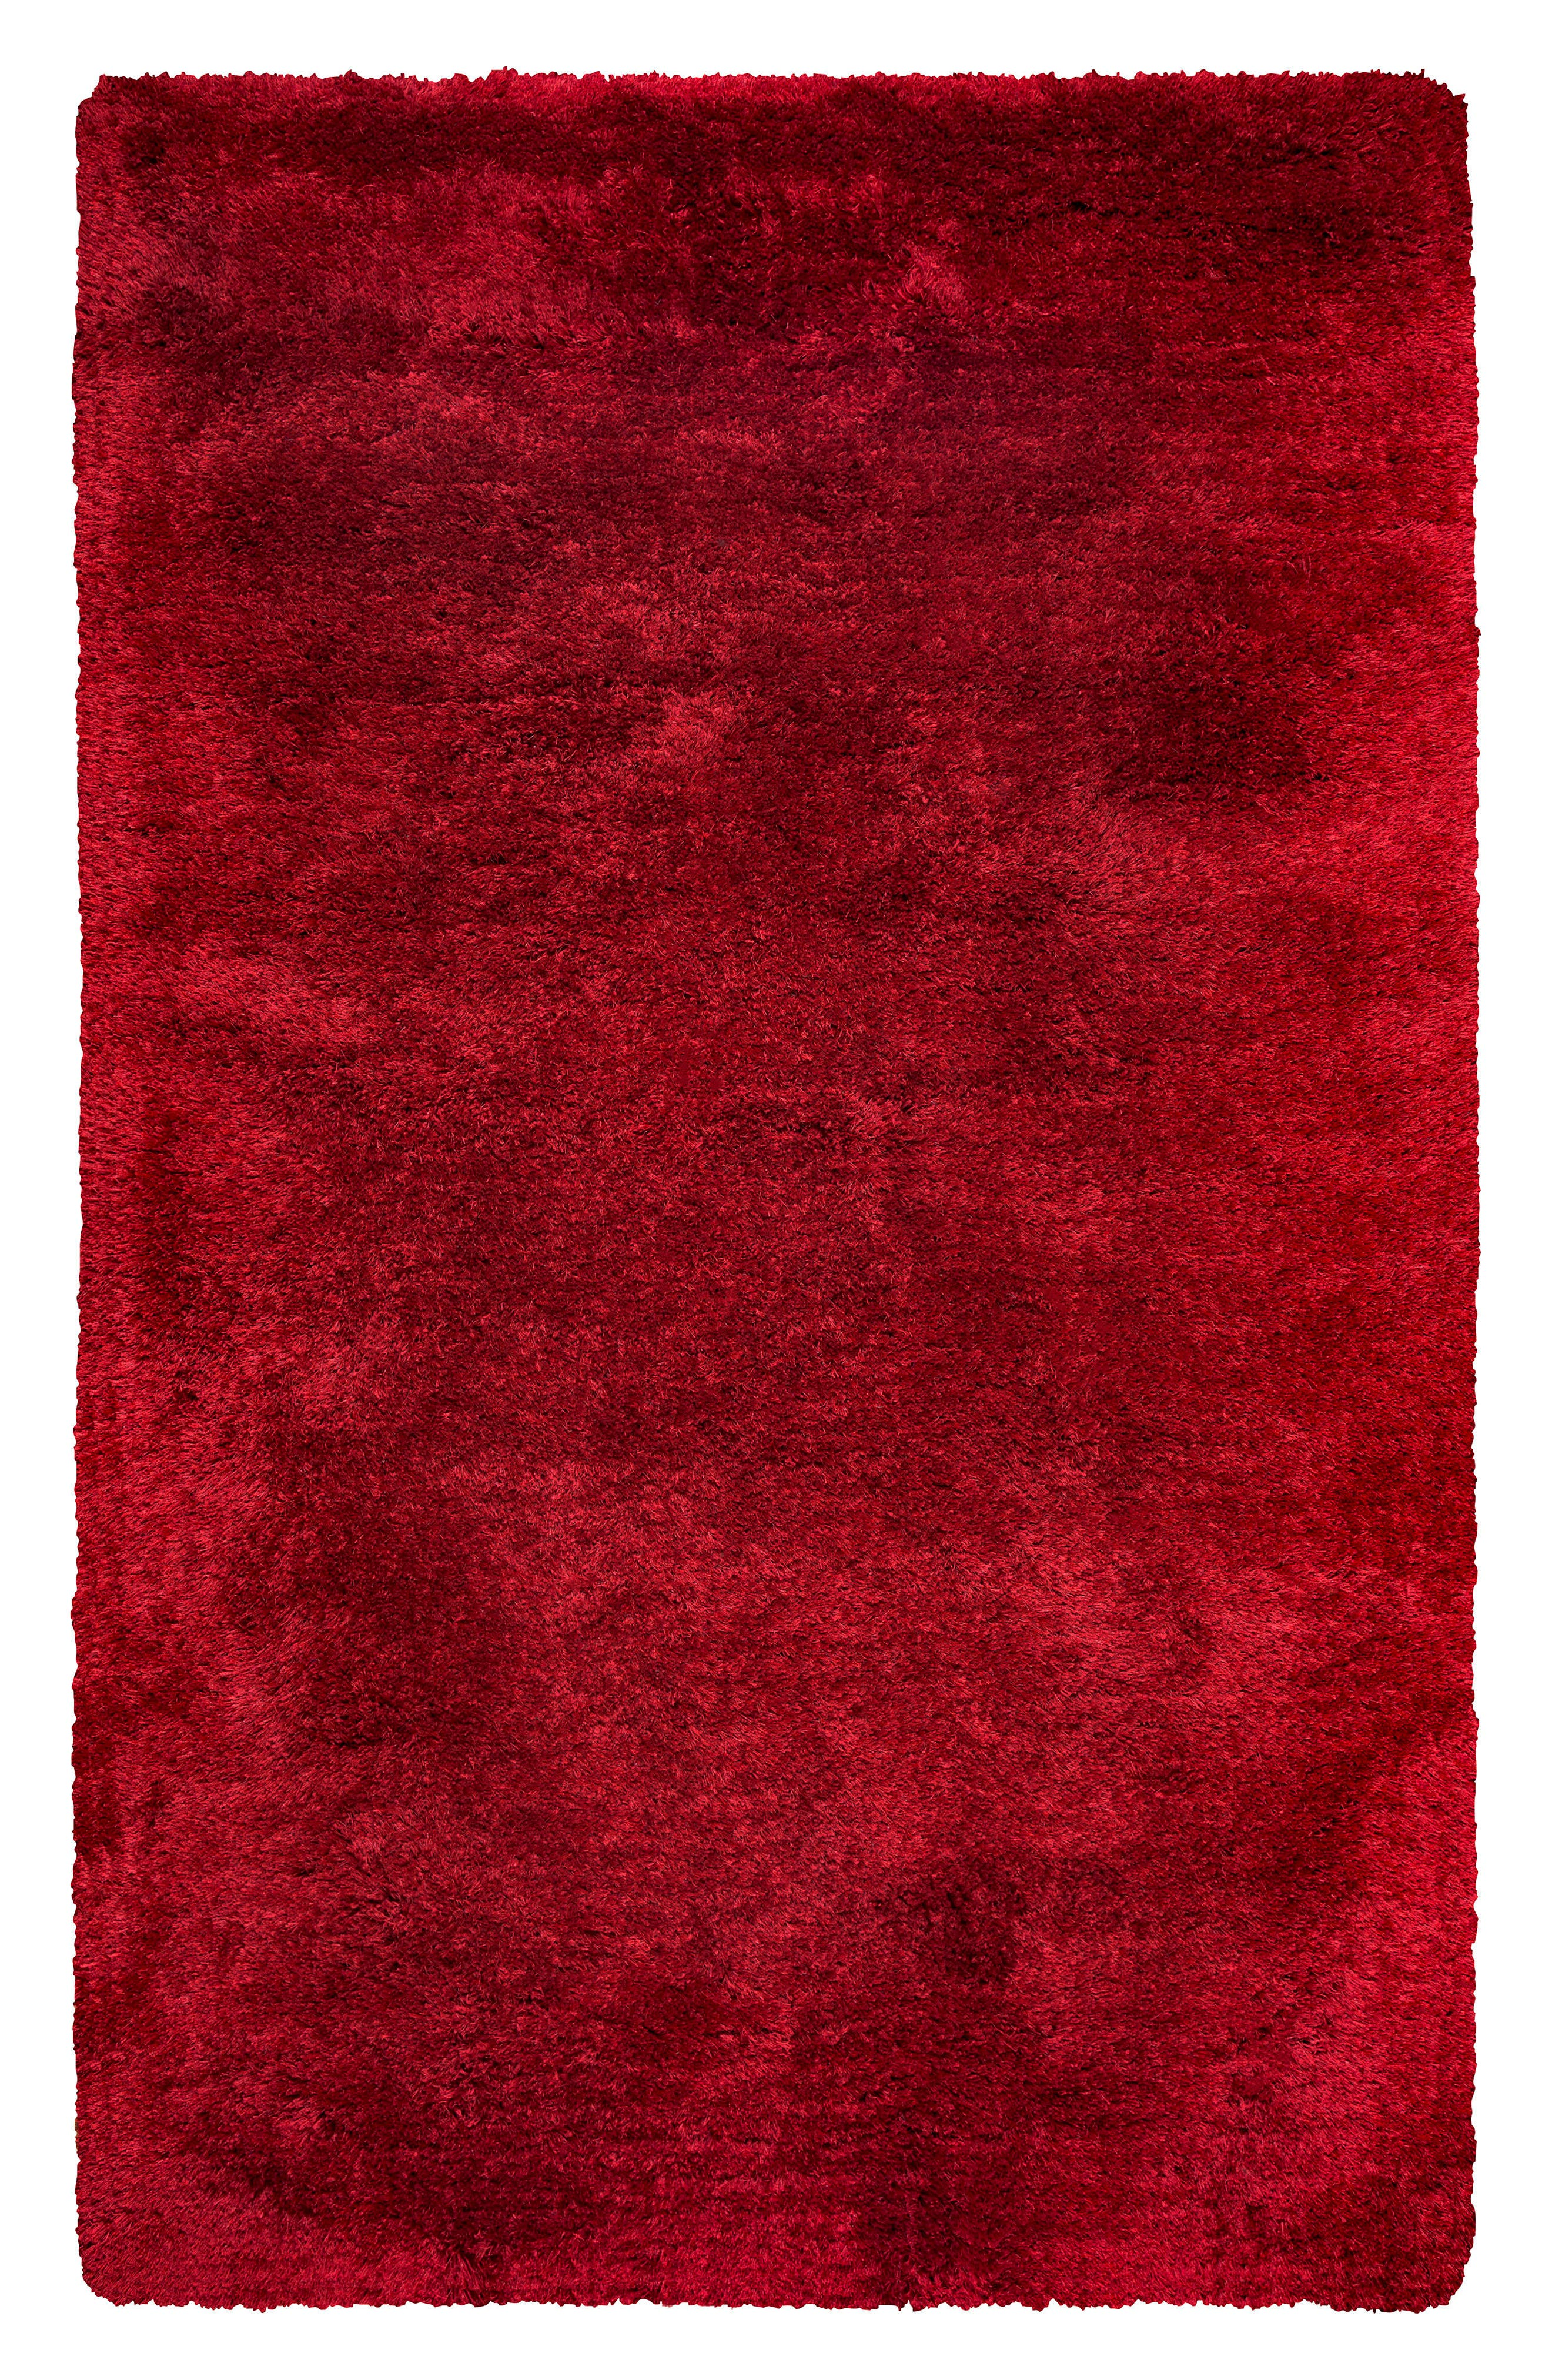 Alternate Image 1 Selected - Rizzy Home Plush Shag Hand Tufted Area Rug